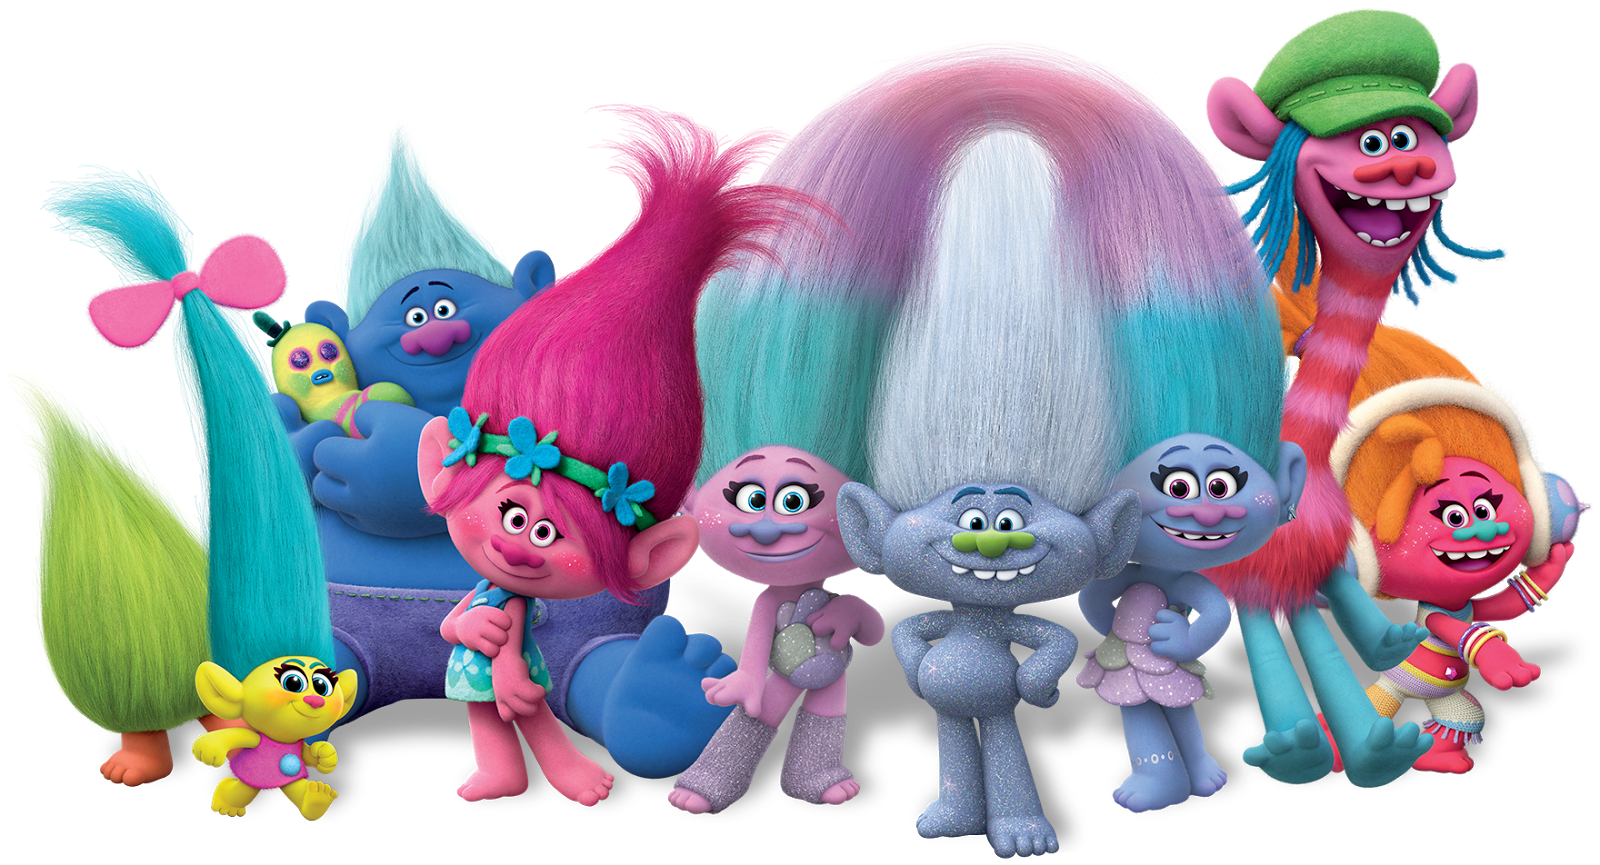 Free Trolls Clipart at GetDrawings.com.